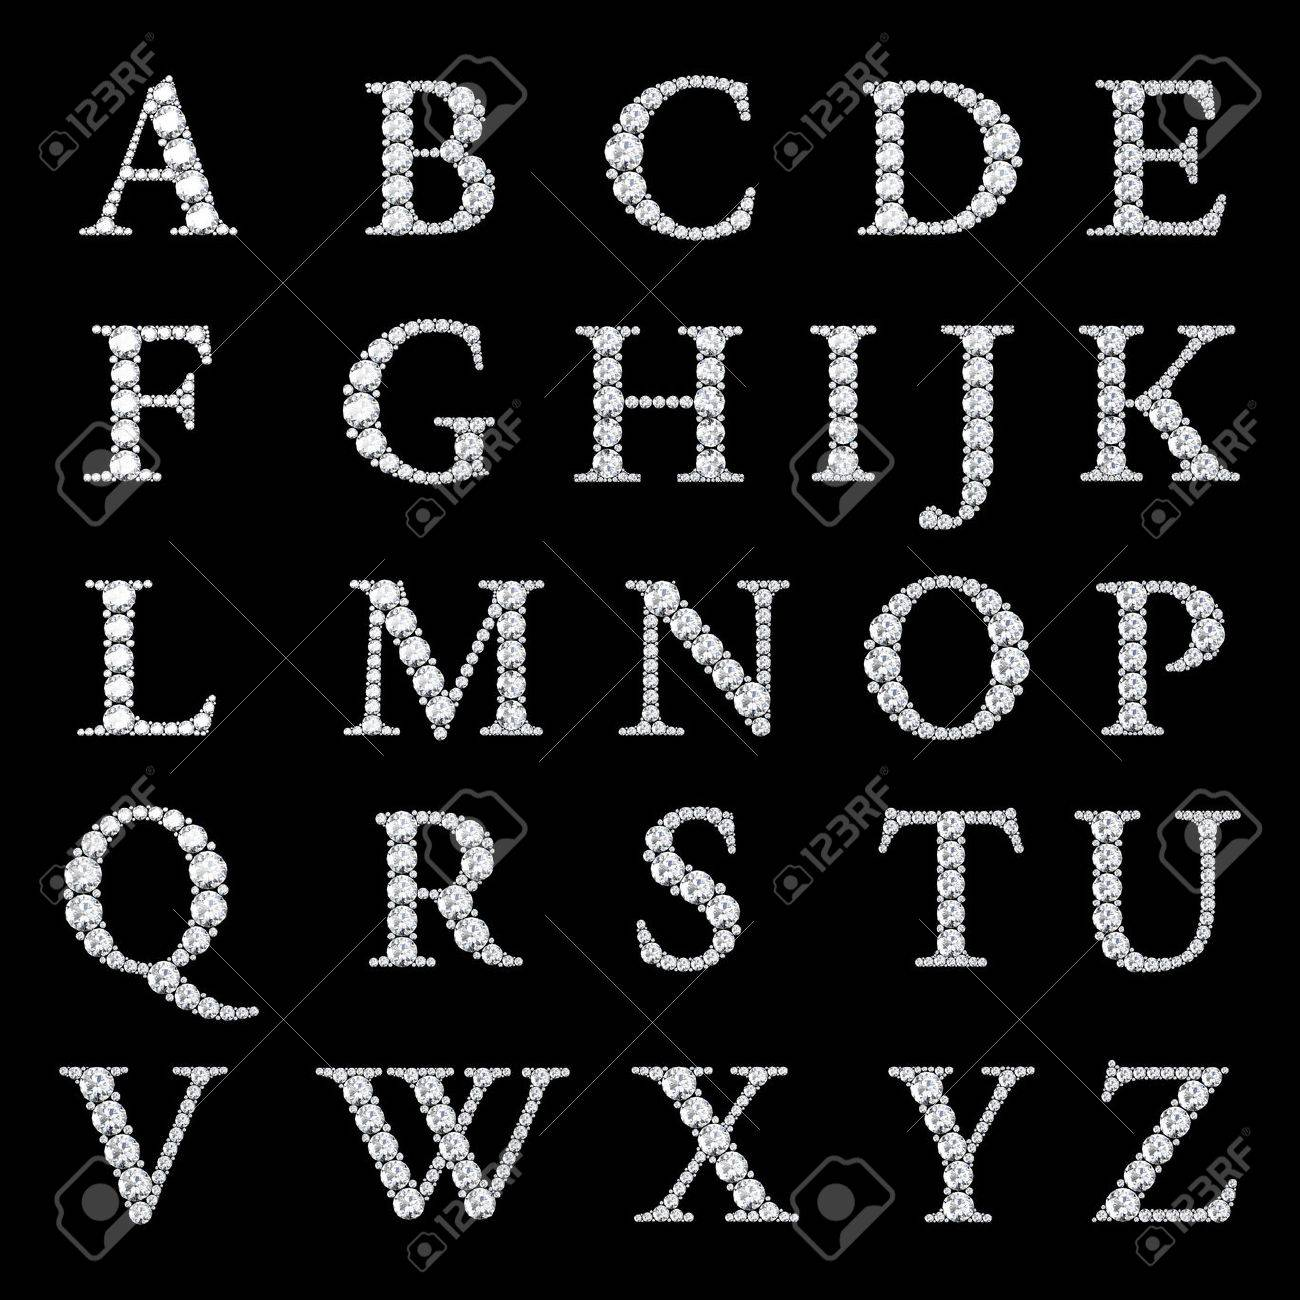 Diamond Alphabet Letters From A To Z Stock Photo